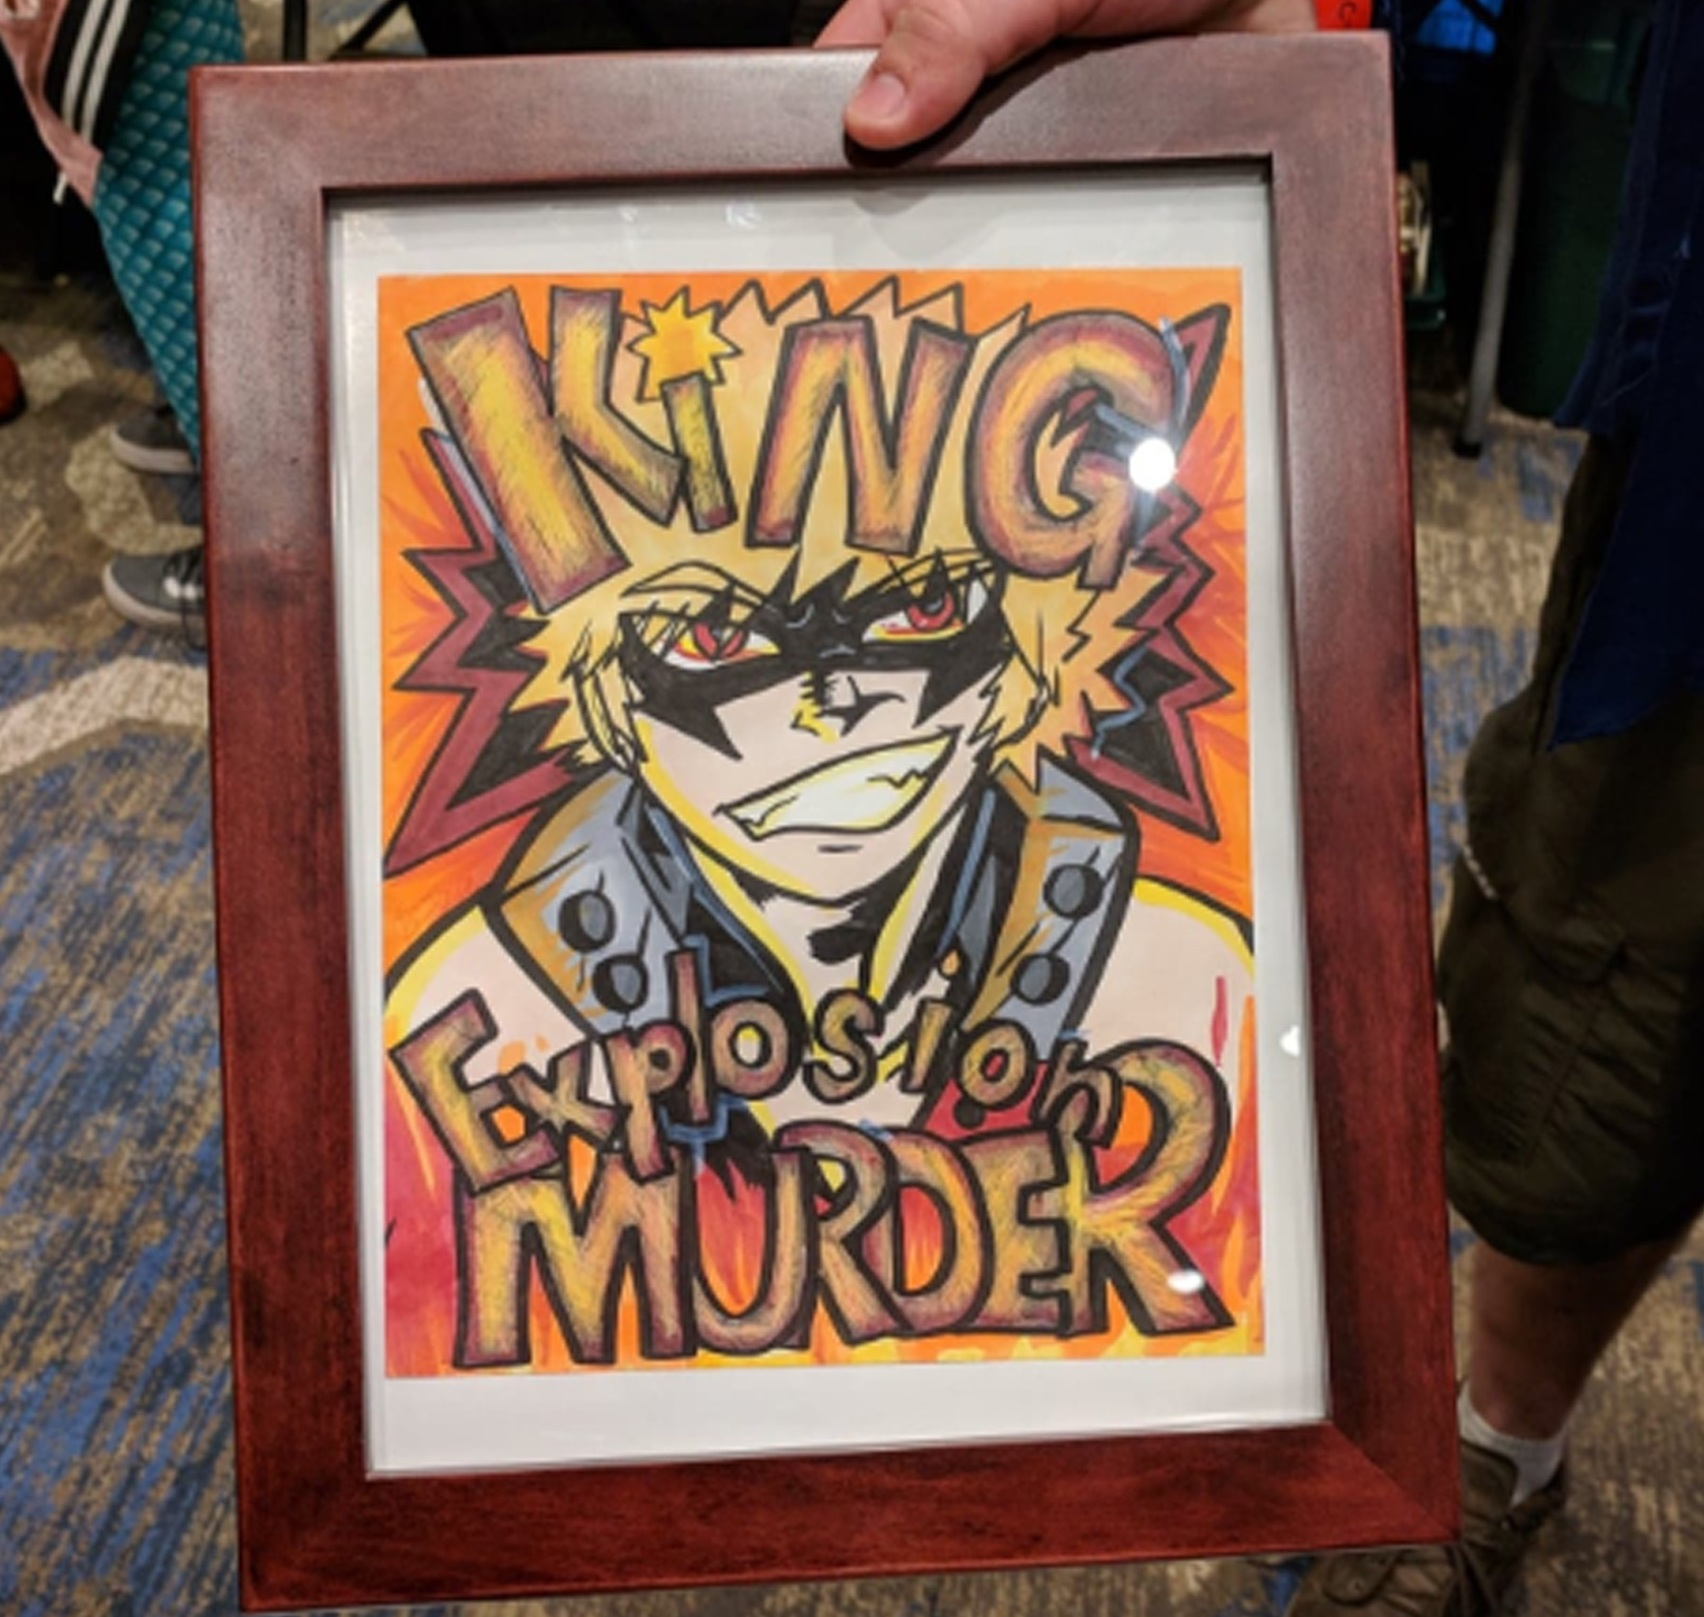 They got it framed!! In the time that I was gone, these crazy dudes took the art to Michael's, bought a frame, and brought it BACK to show us! I wish I could have been there XD I never did find out what they're friend thought!